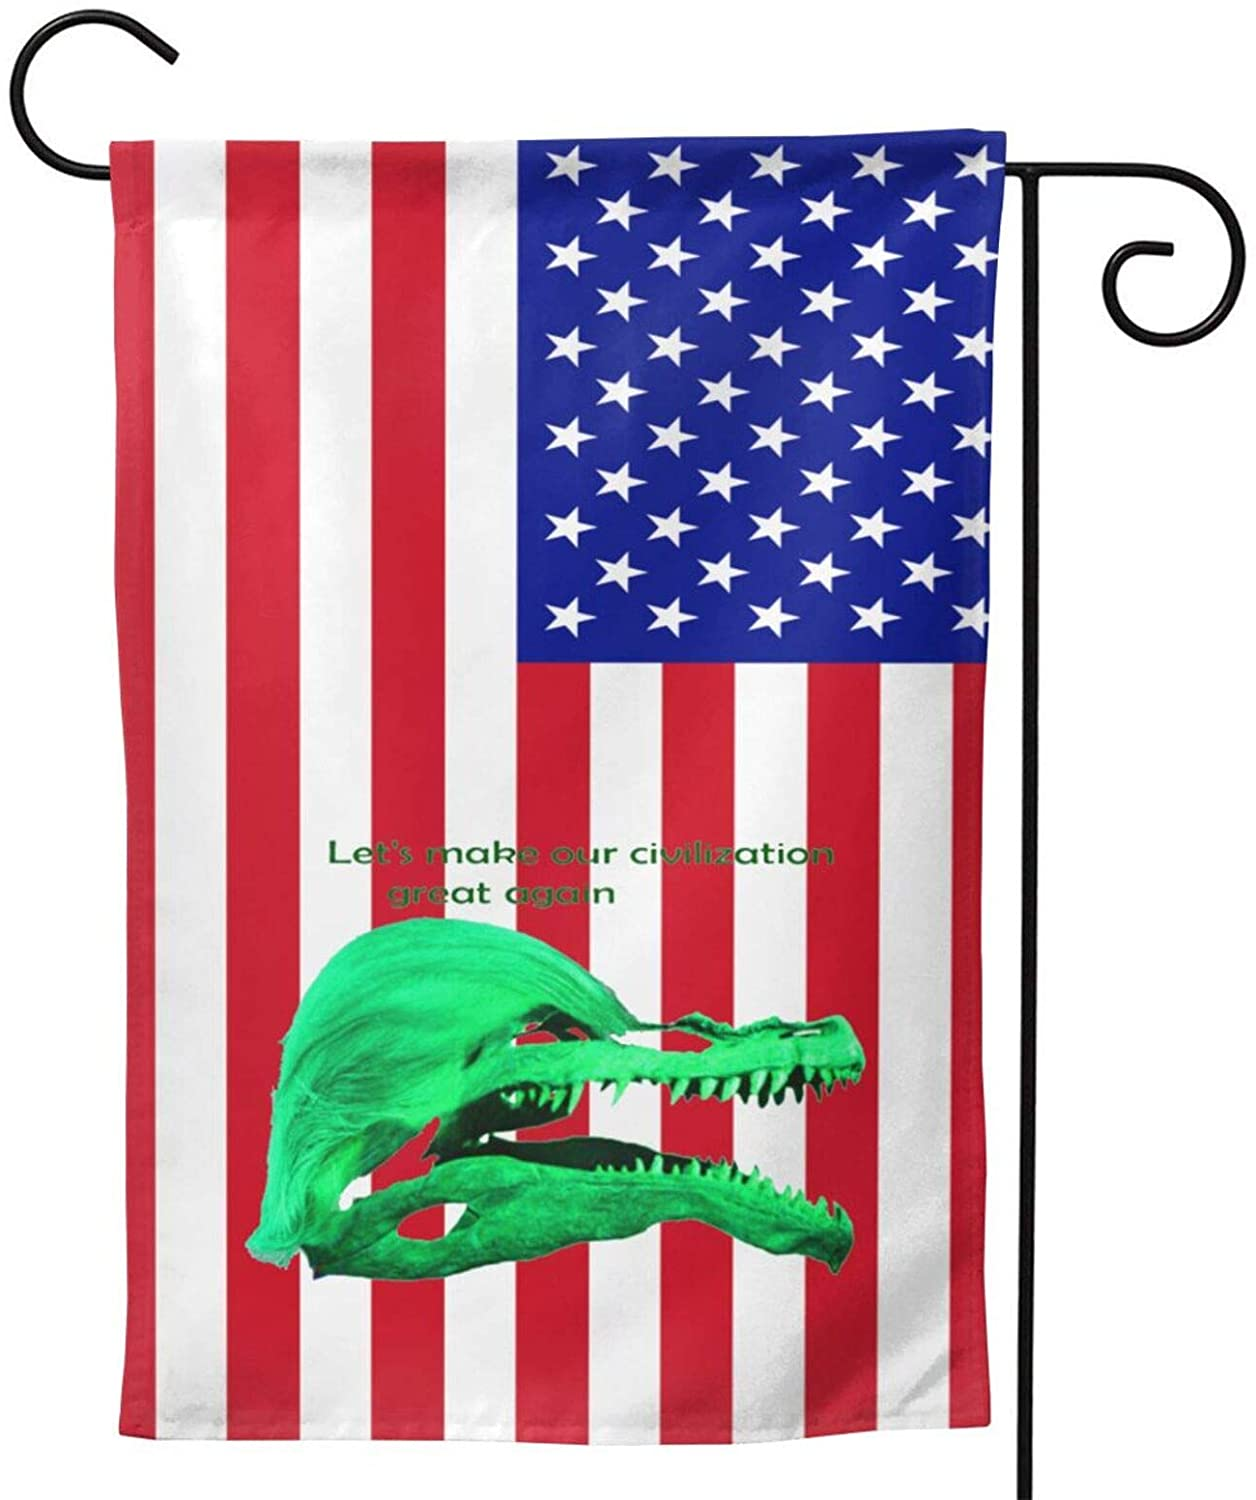 Trump of The Civilization of Dinosaurs Garden Yard Flag Vertical Full Screen Printing Double Sided Great American Flag Yard Outdoor Decoration